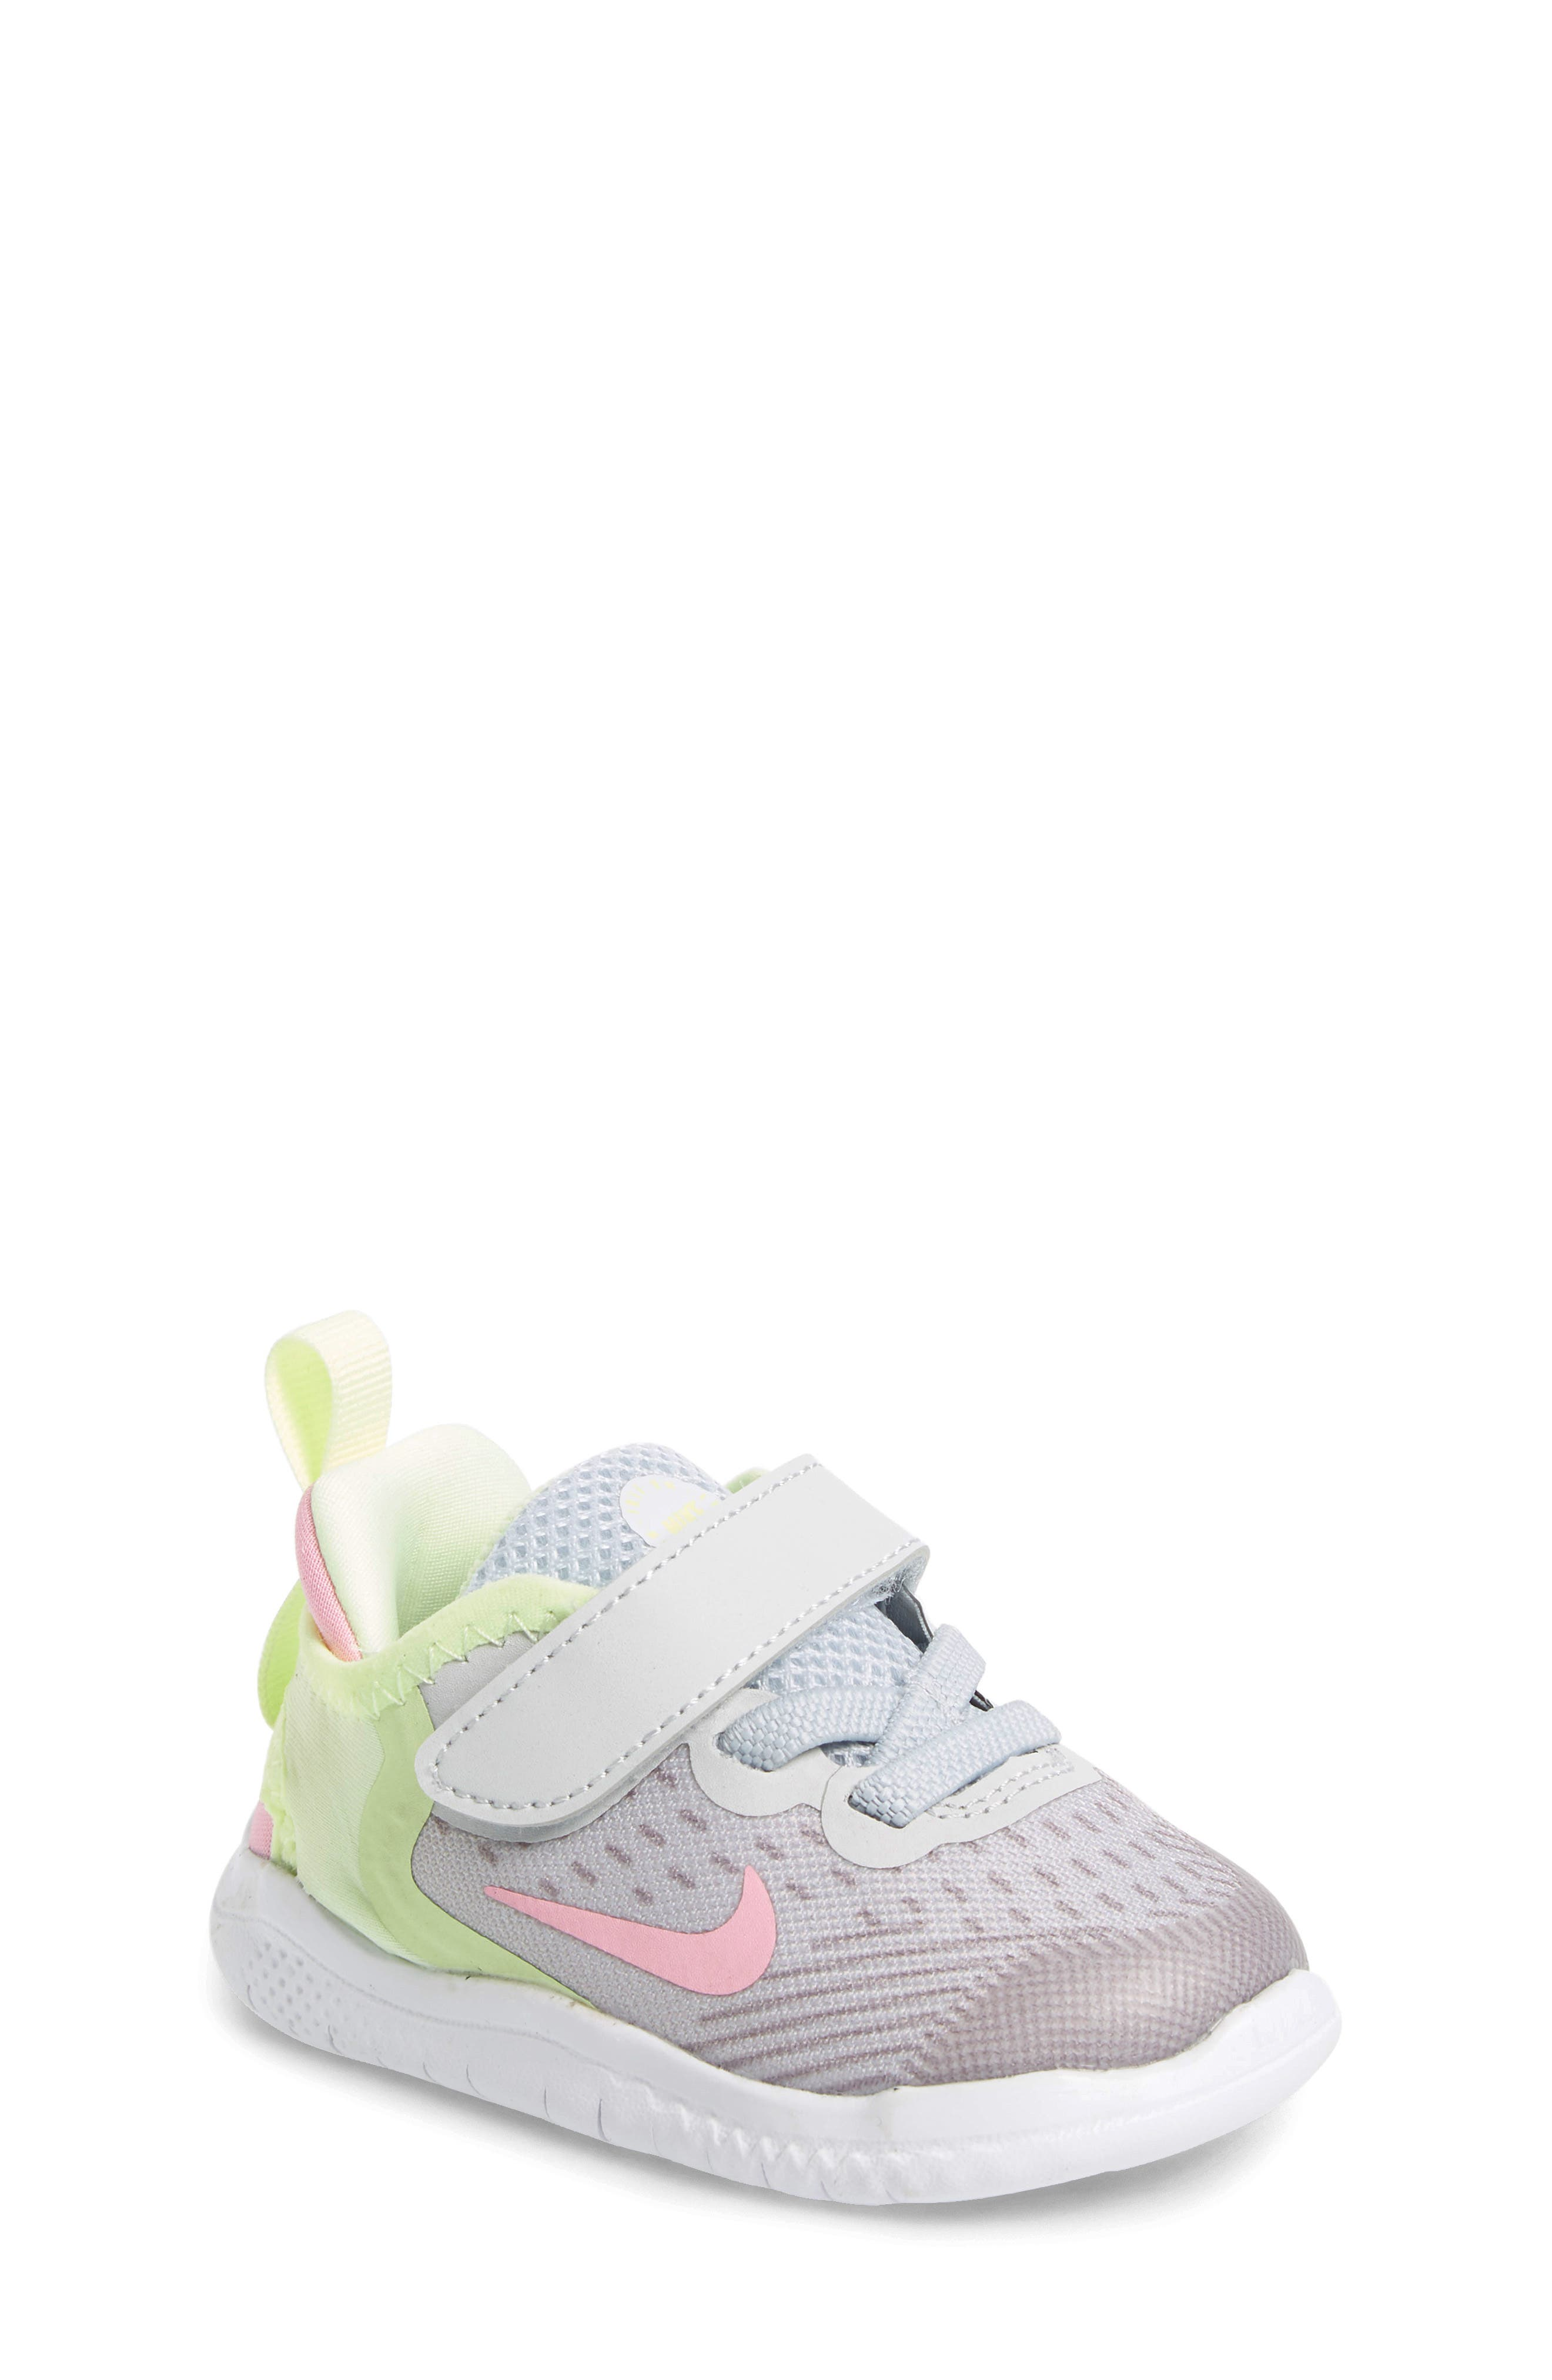 NIKE, Free RN Running Shoe, Main thumbnail 1, color, PURE PLATINUM/ PINK RISE-VOLT